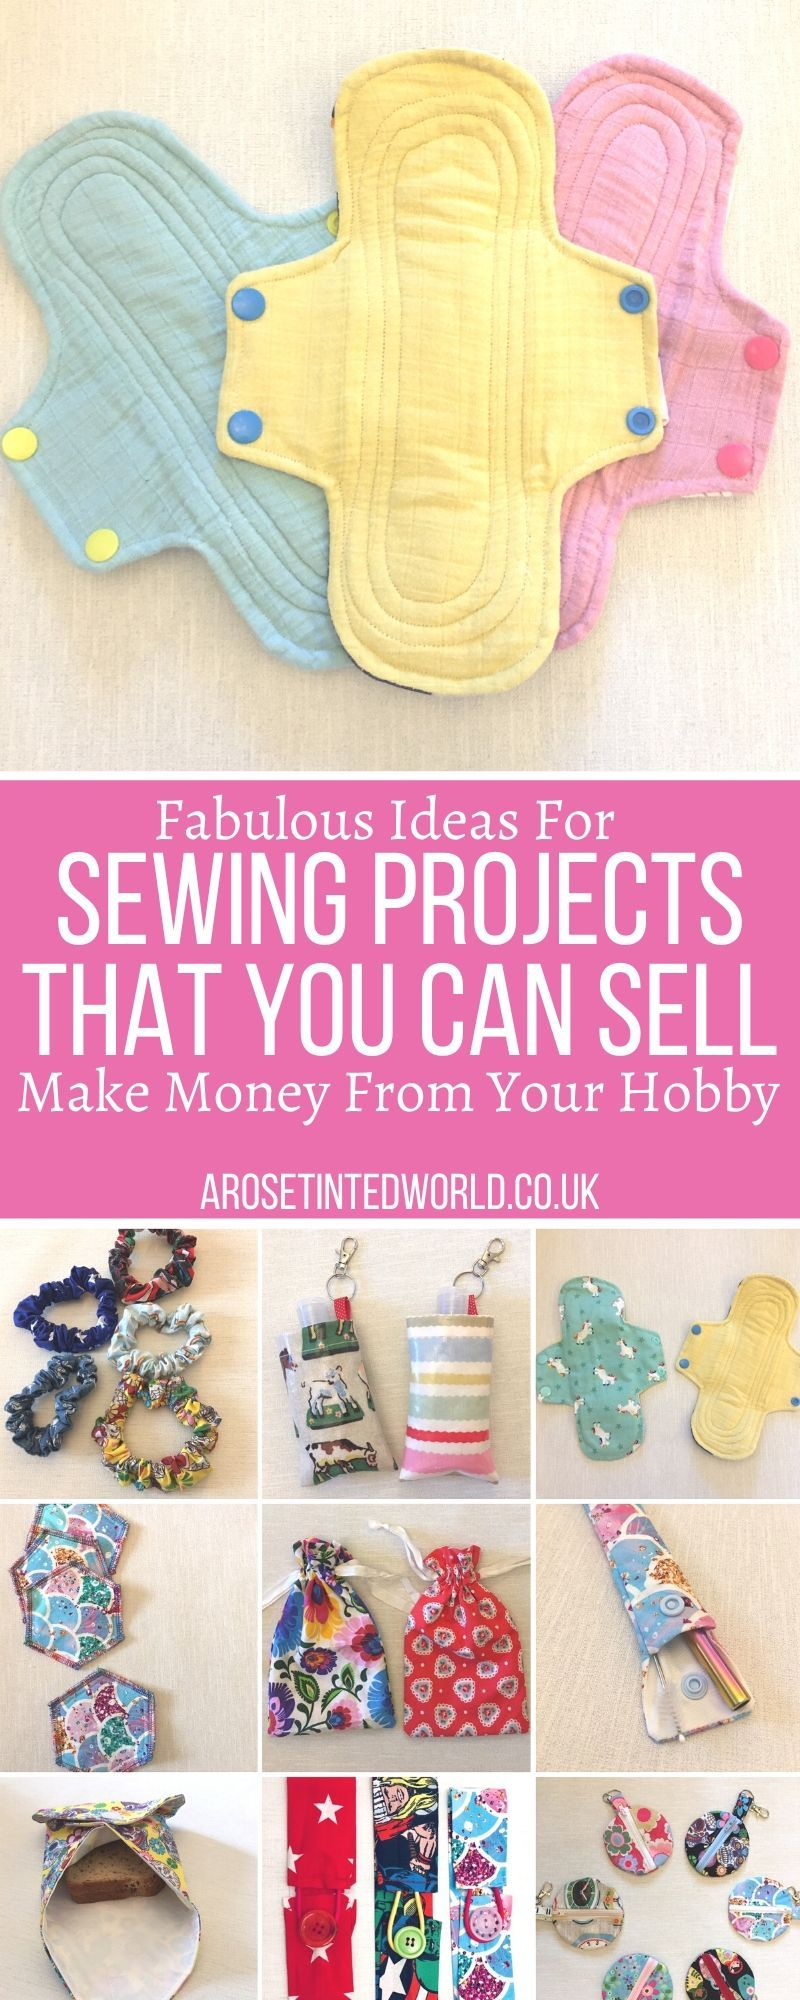 Sewing Projects That You Can Sell